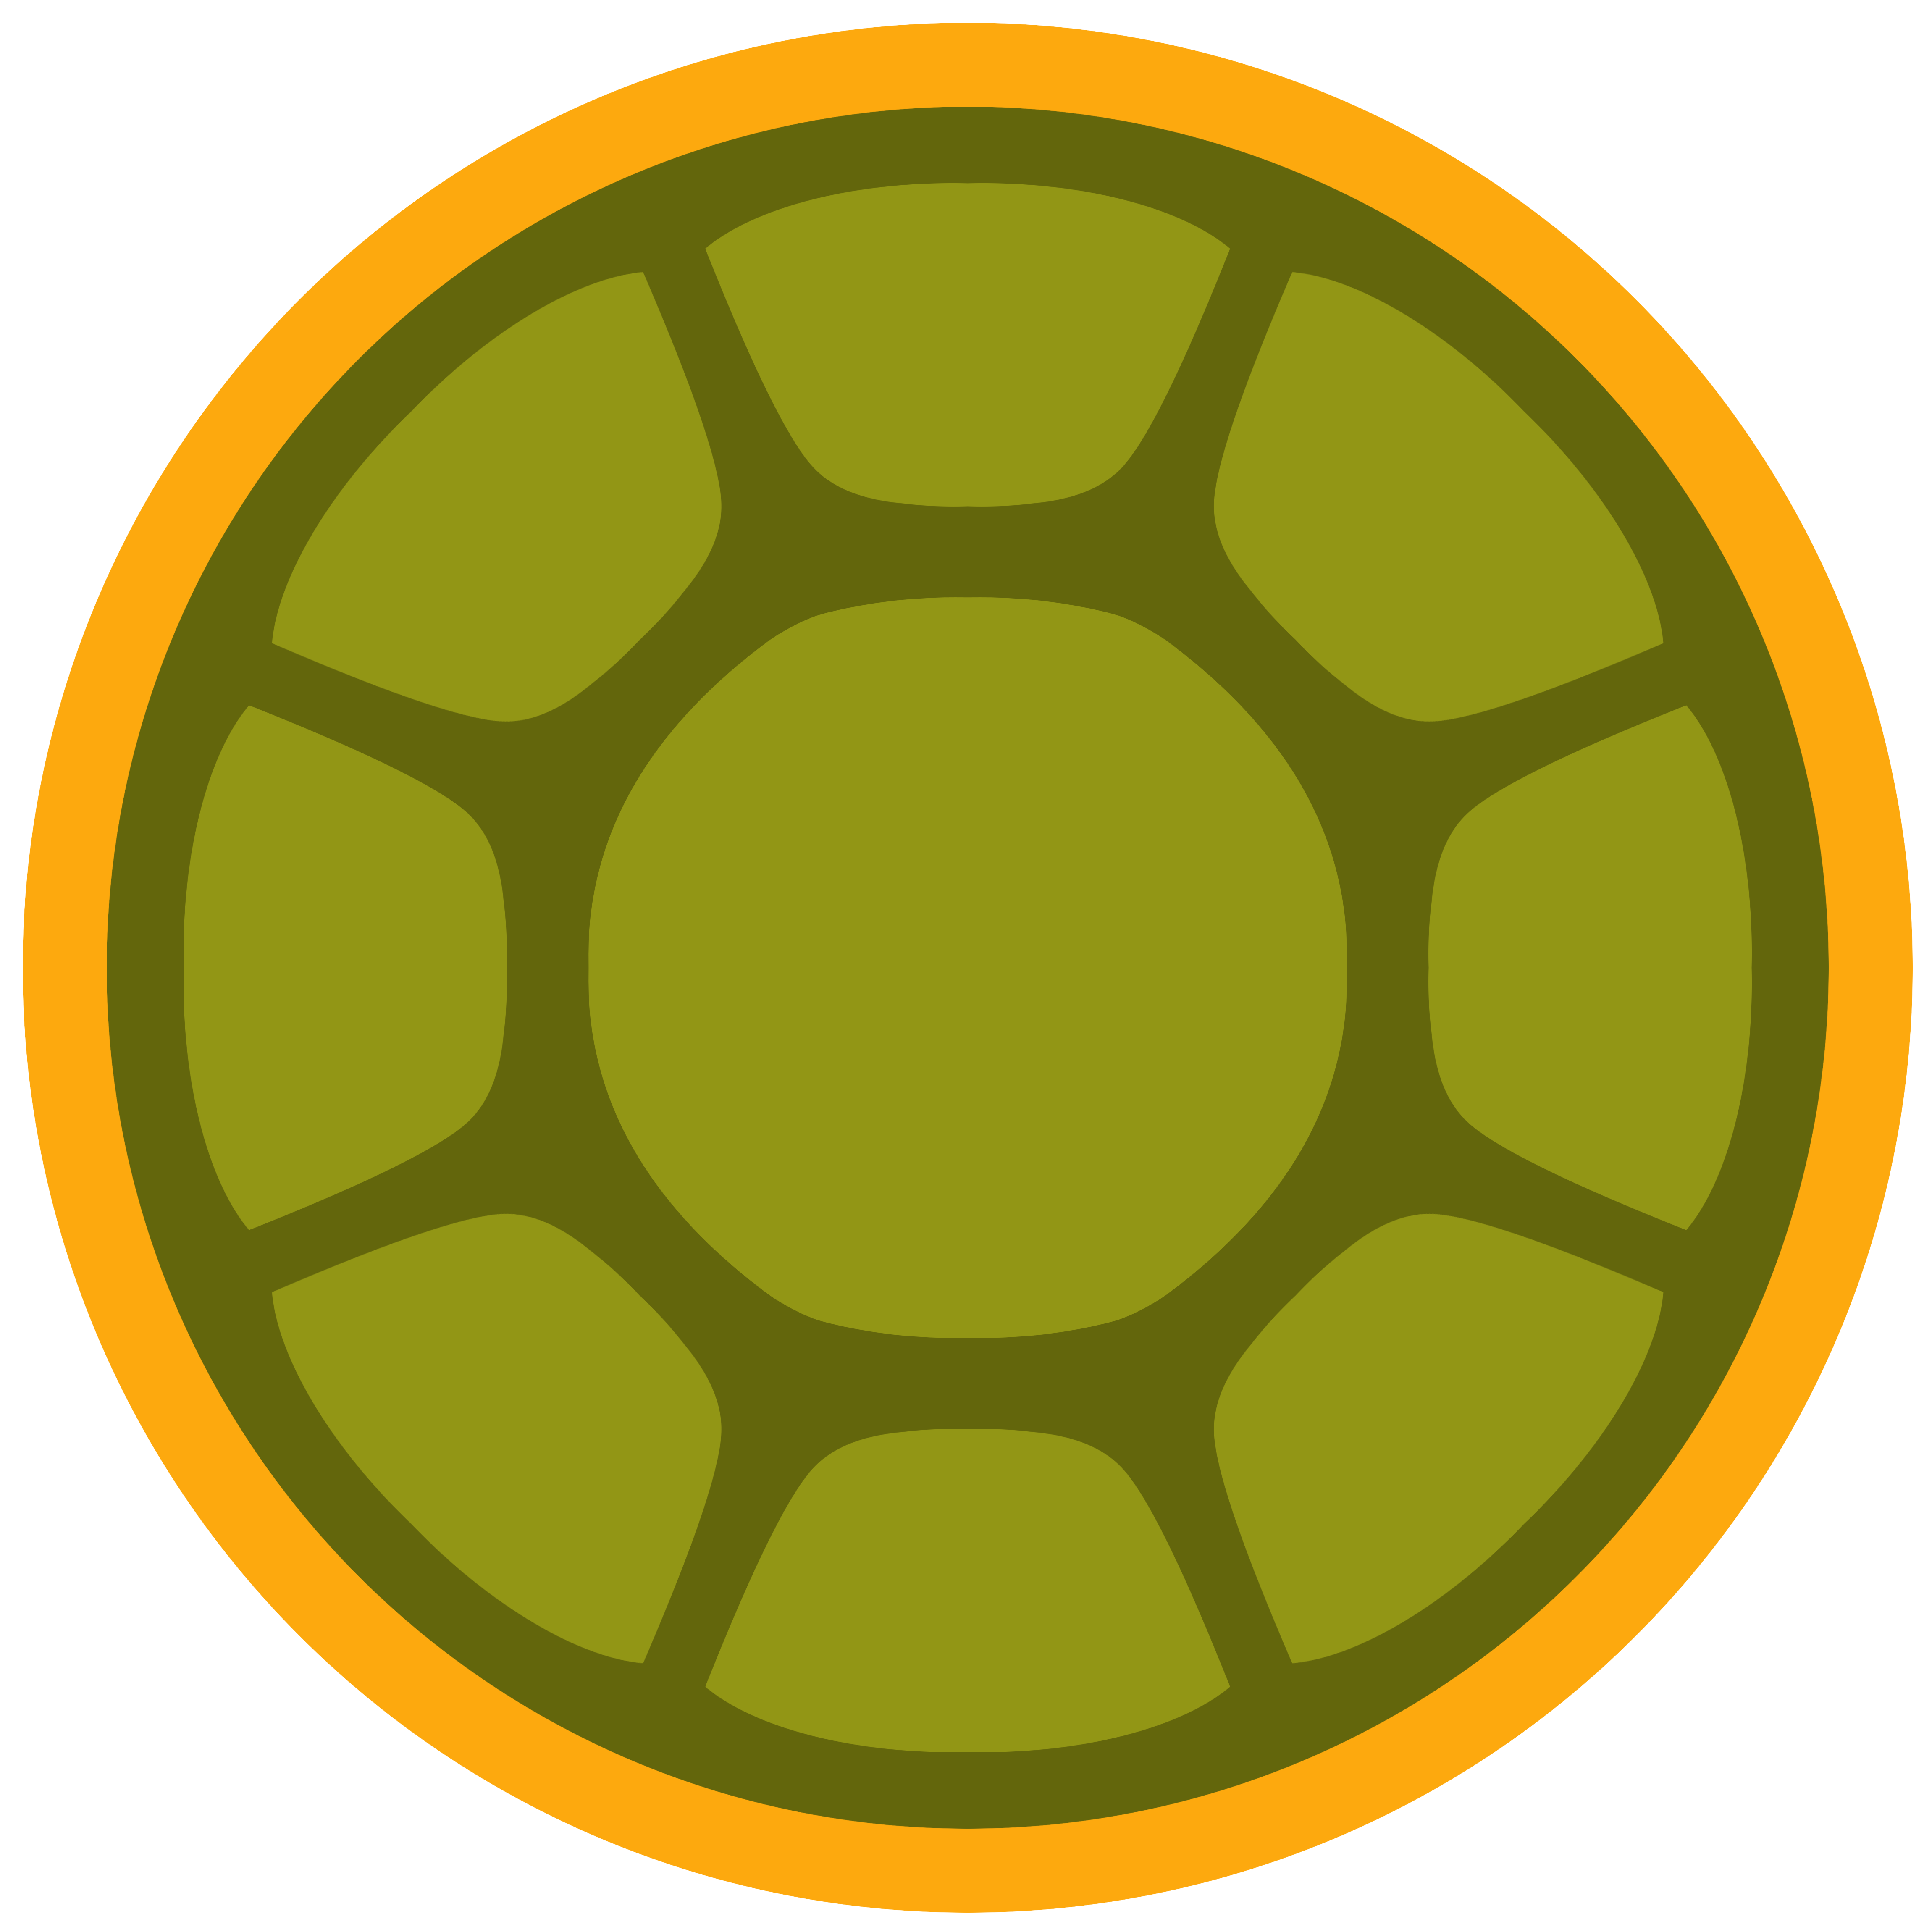 Ninja turtle shell logo - photo#11